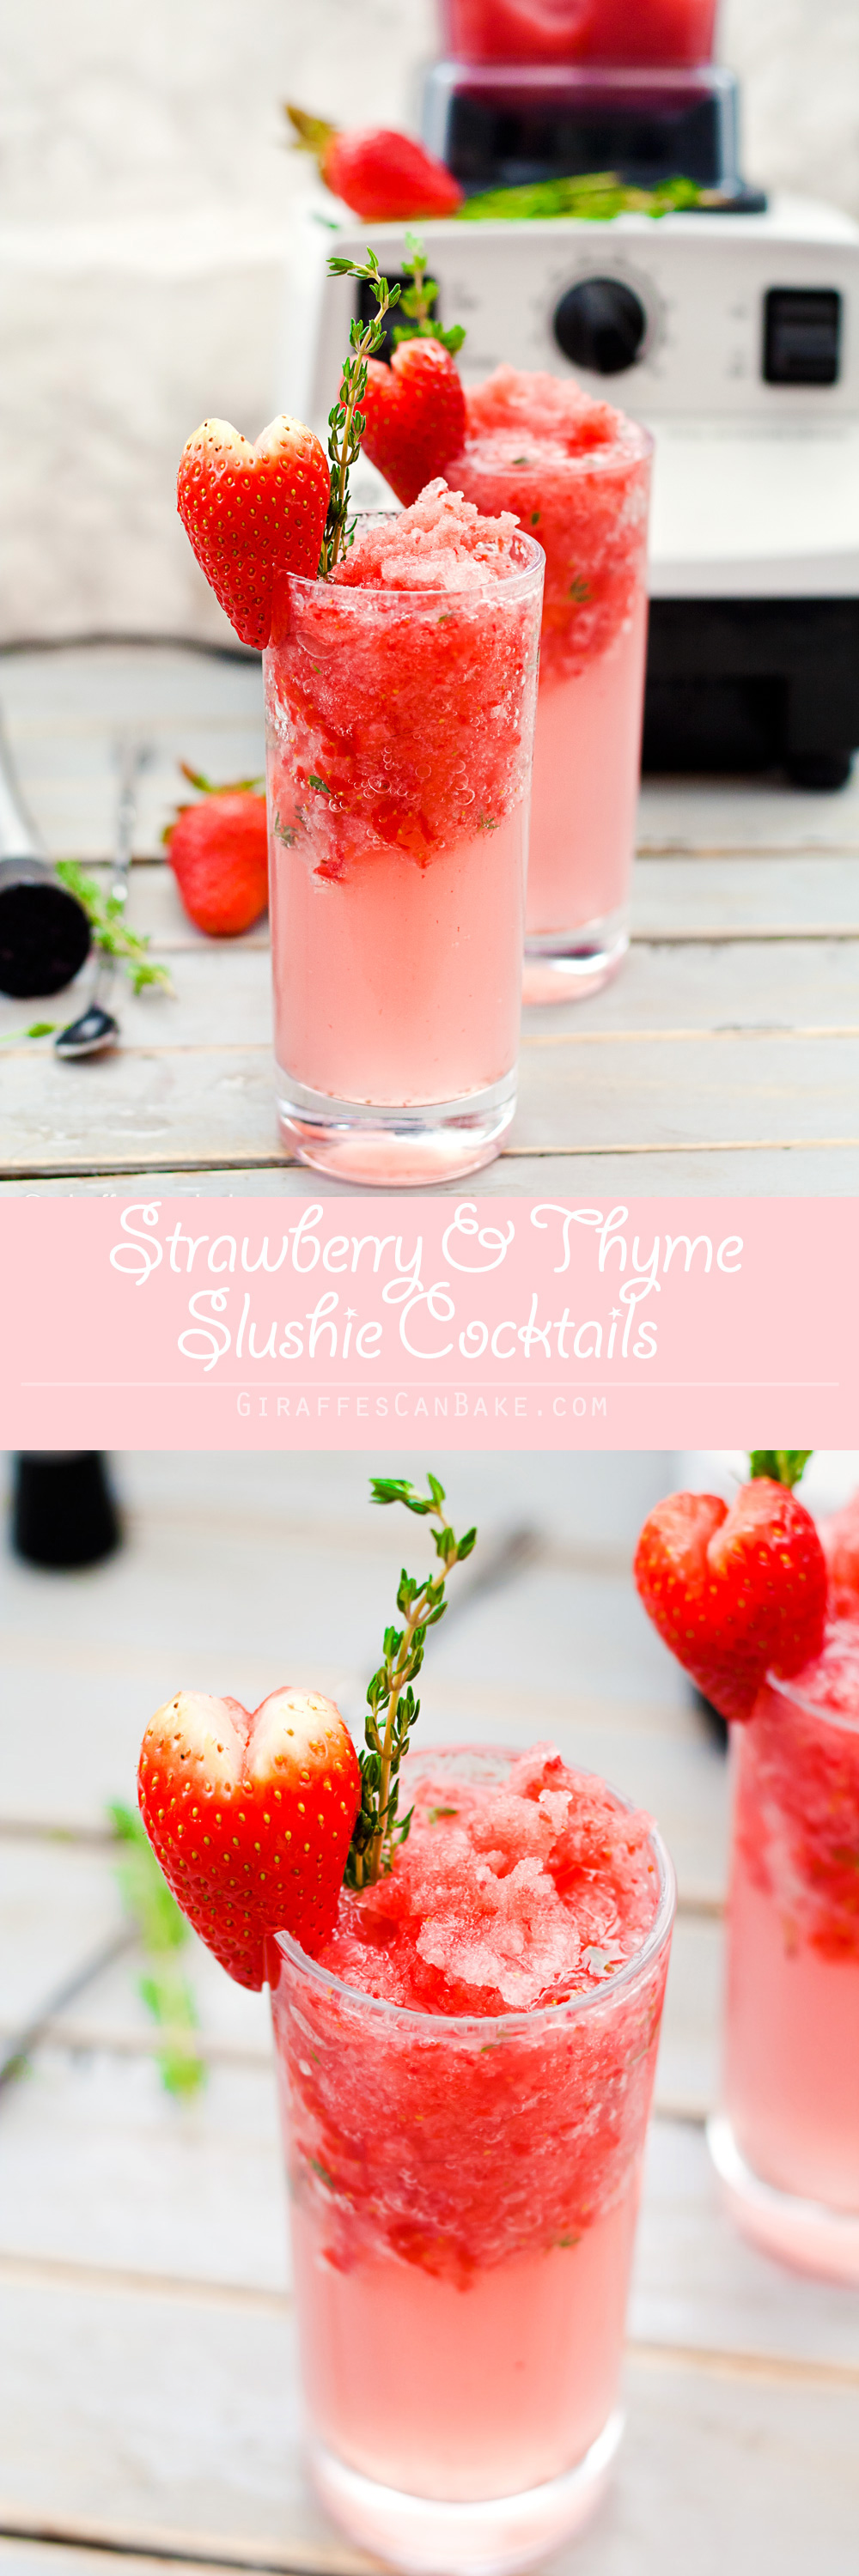 Strawberry & Thyme Slushie Cocktails for Valentine's Day - These Strawberry and Thyme Slushie Cocktails are not only gorgeous, they're totally delicious too. Sweet strawberries are muddled with aromatic thyme and white rum, add some crushed strawberry ice and soda water and you have the perfect Valentine's Day cocktail to share with your sweetheart.